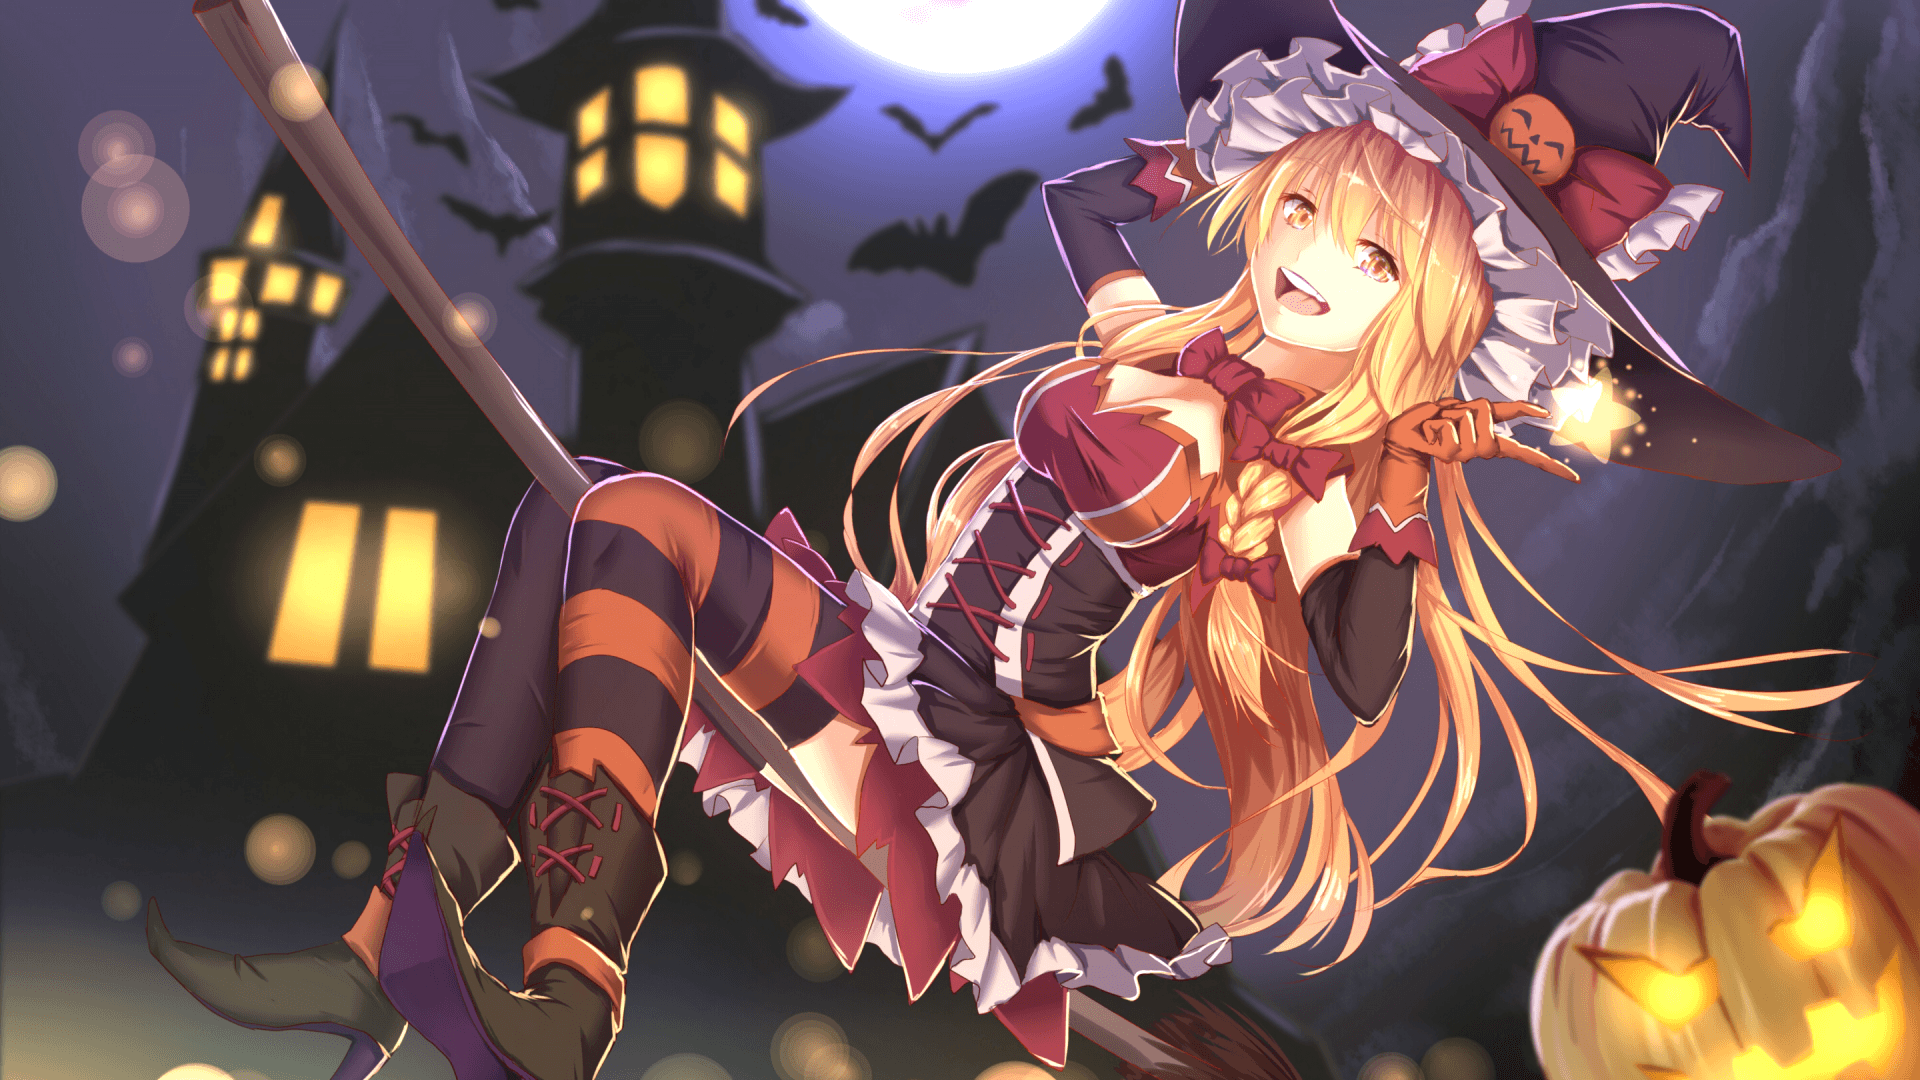 Download 1920x1080 Anime Girl, Halloween Costume, Witch